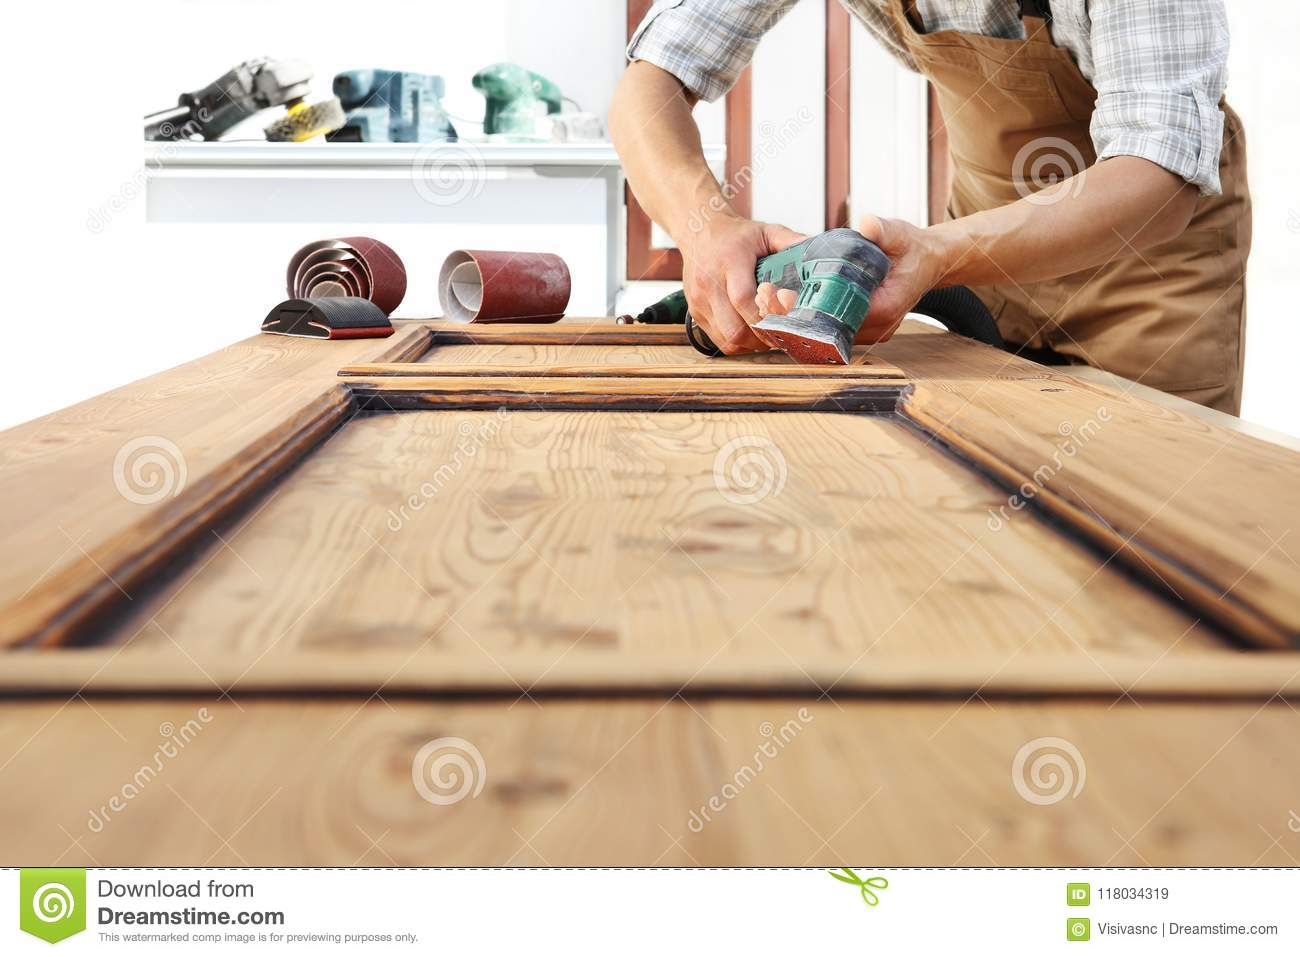 Carpenter Work The Wood With The Sander Stock Image - Image